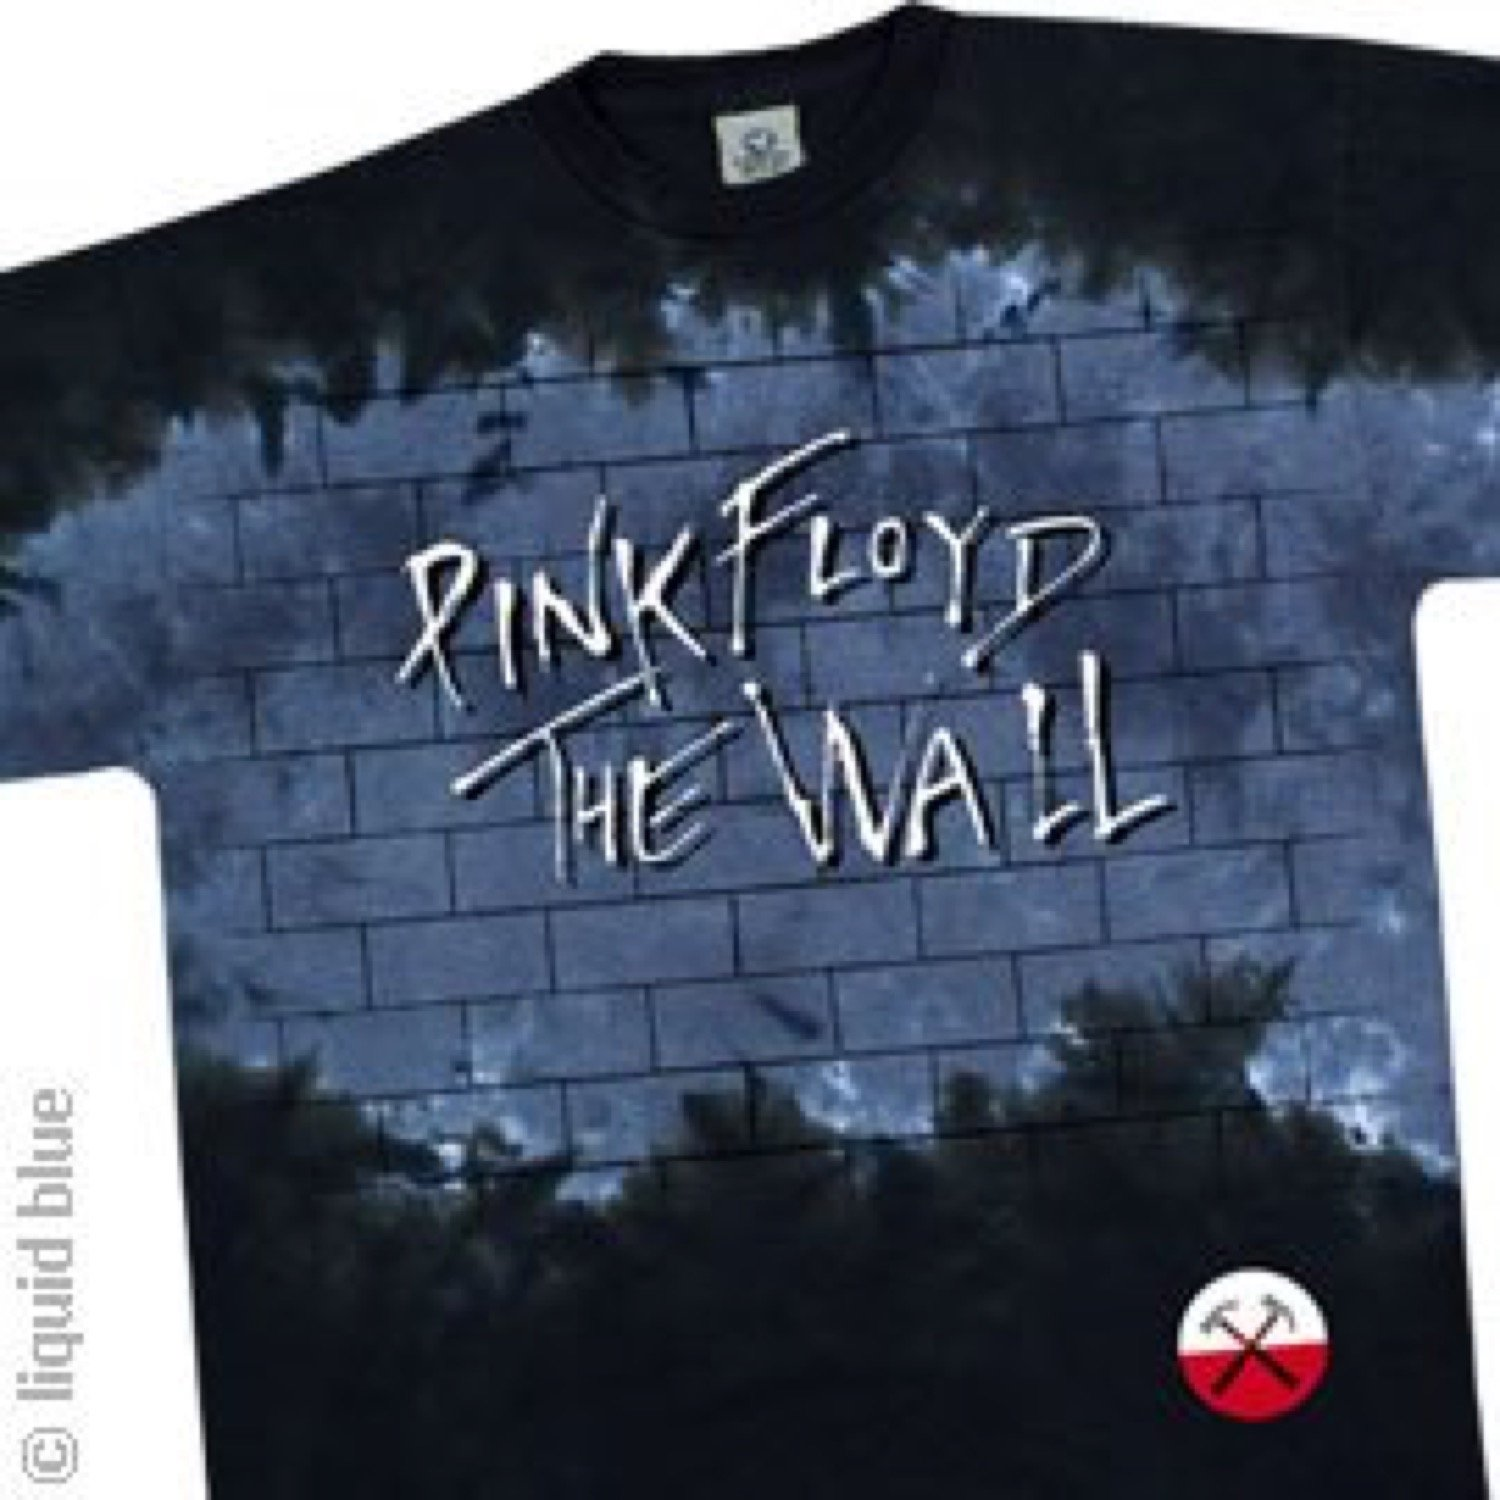 2d71c505 Pink Floyd T-Shirt - Dark Side 30th Anniversary (Tie-Dye): Amazon.co.uk:  Clothing